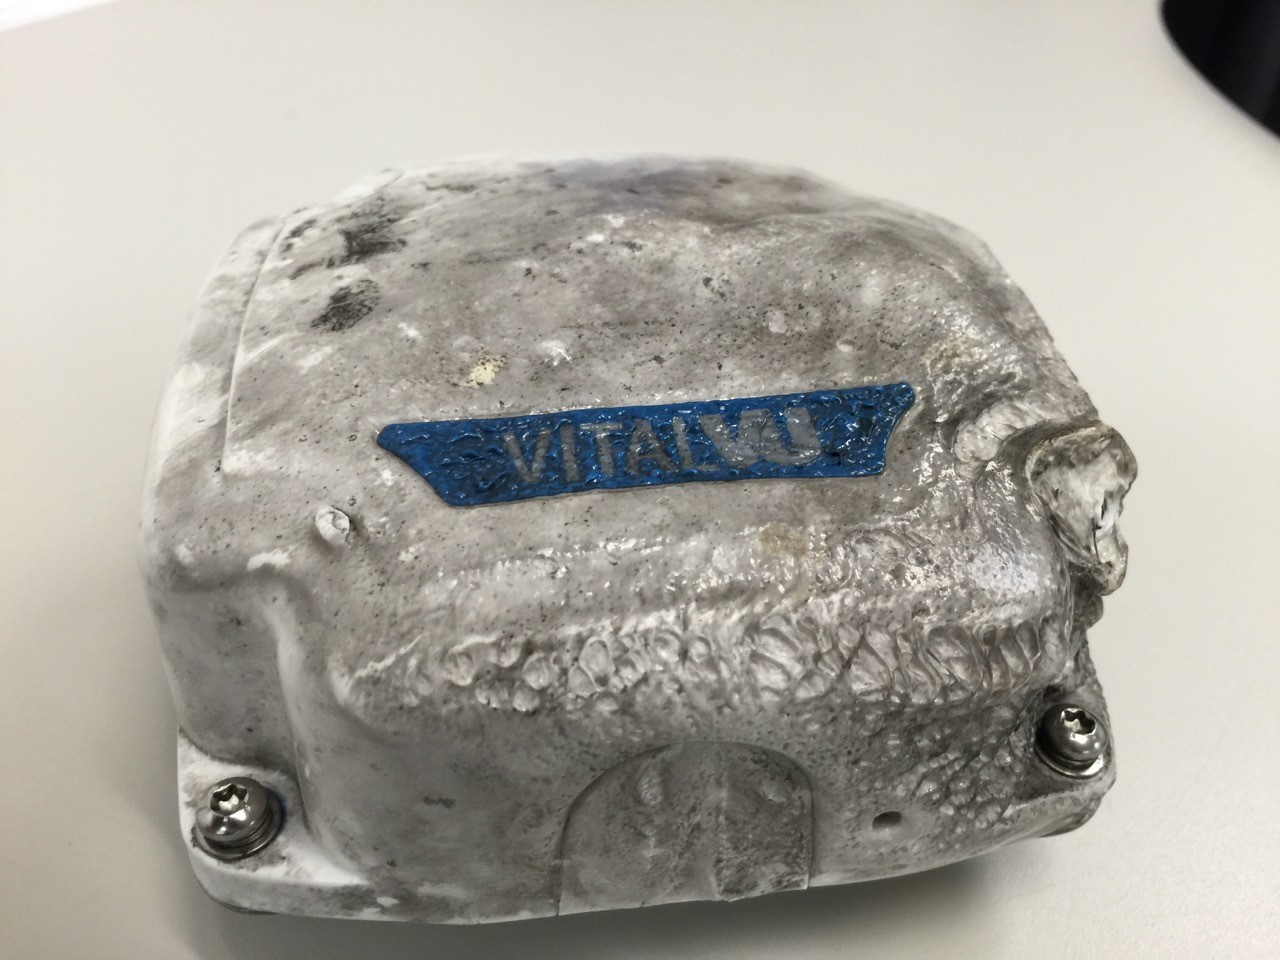 This ORBCOMM IDP-680 satellite terminal kept on ticking for VitalVu after a powerful oil tank explosion and fire